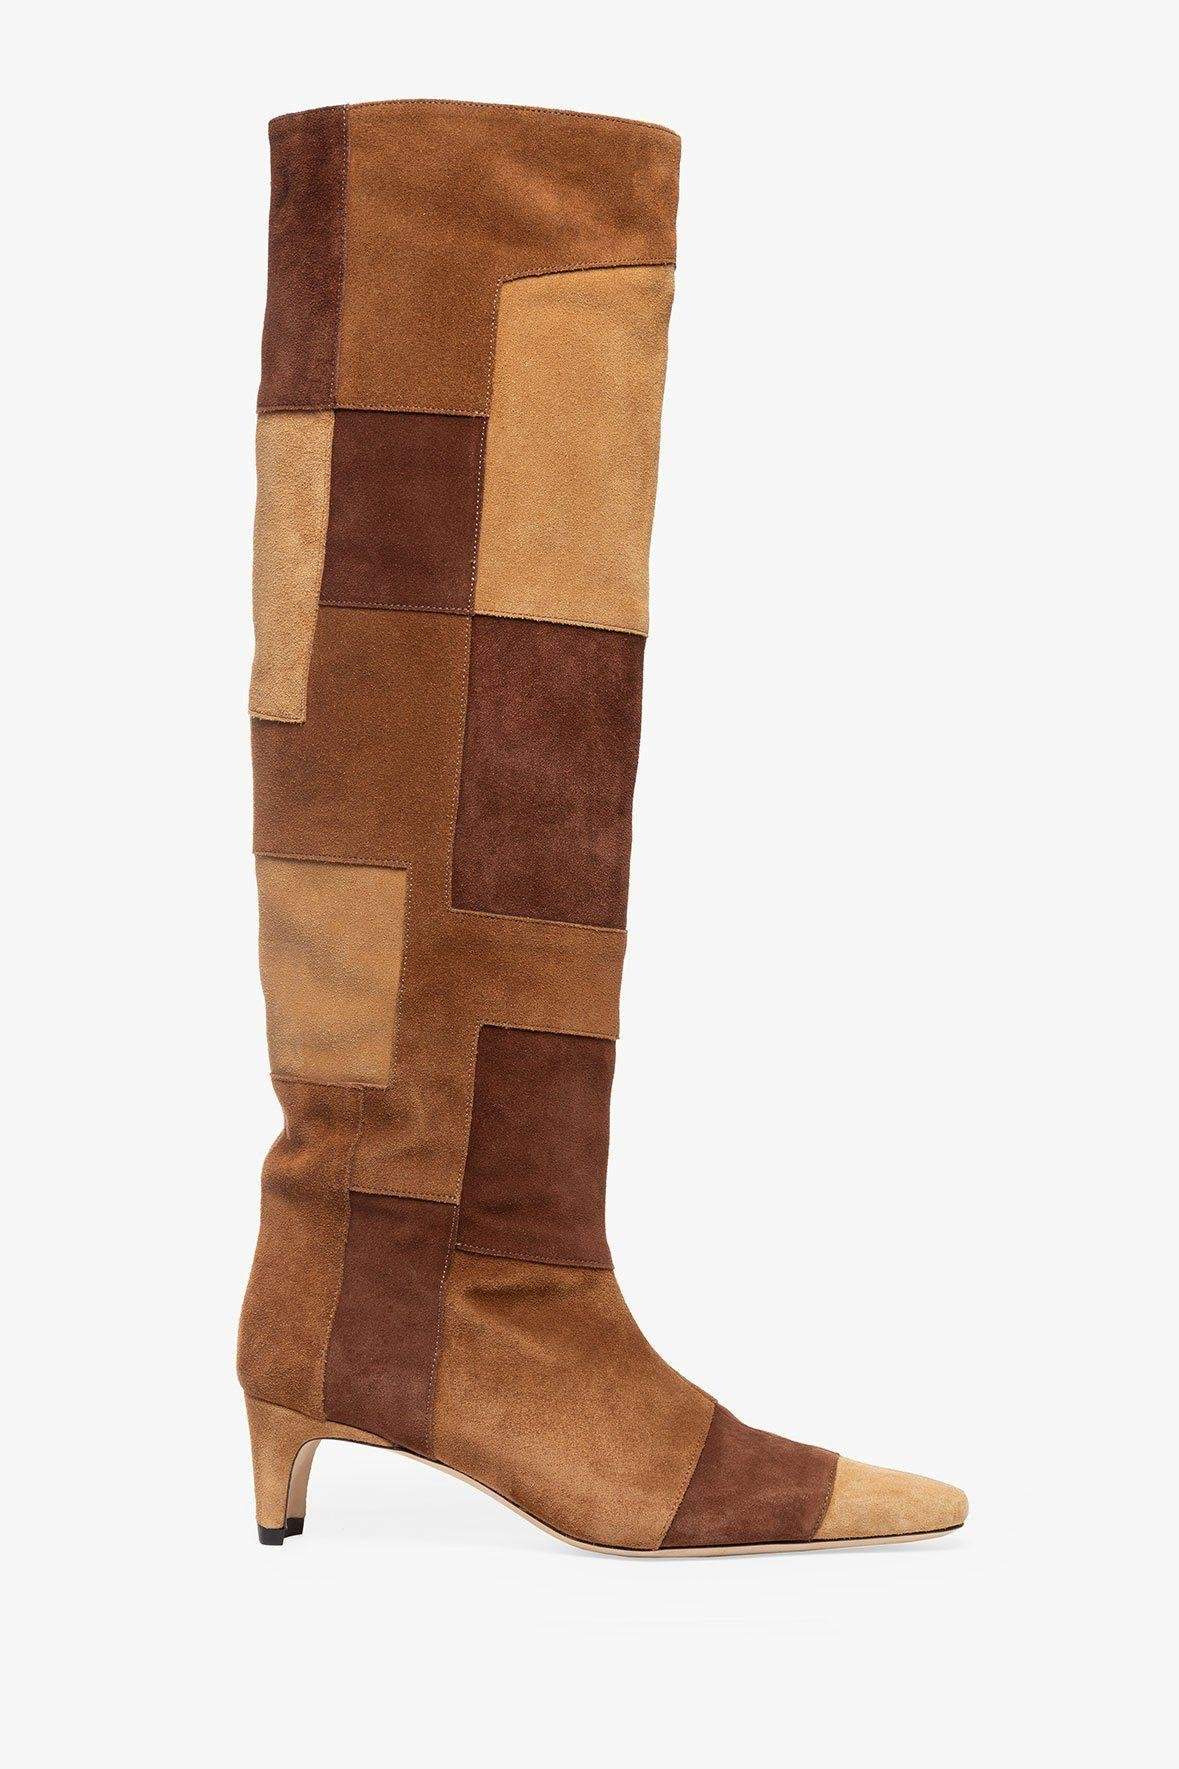 WALLY BOOT | TAN PATCHWORK